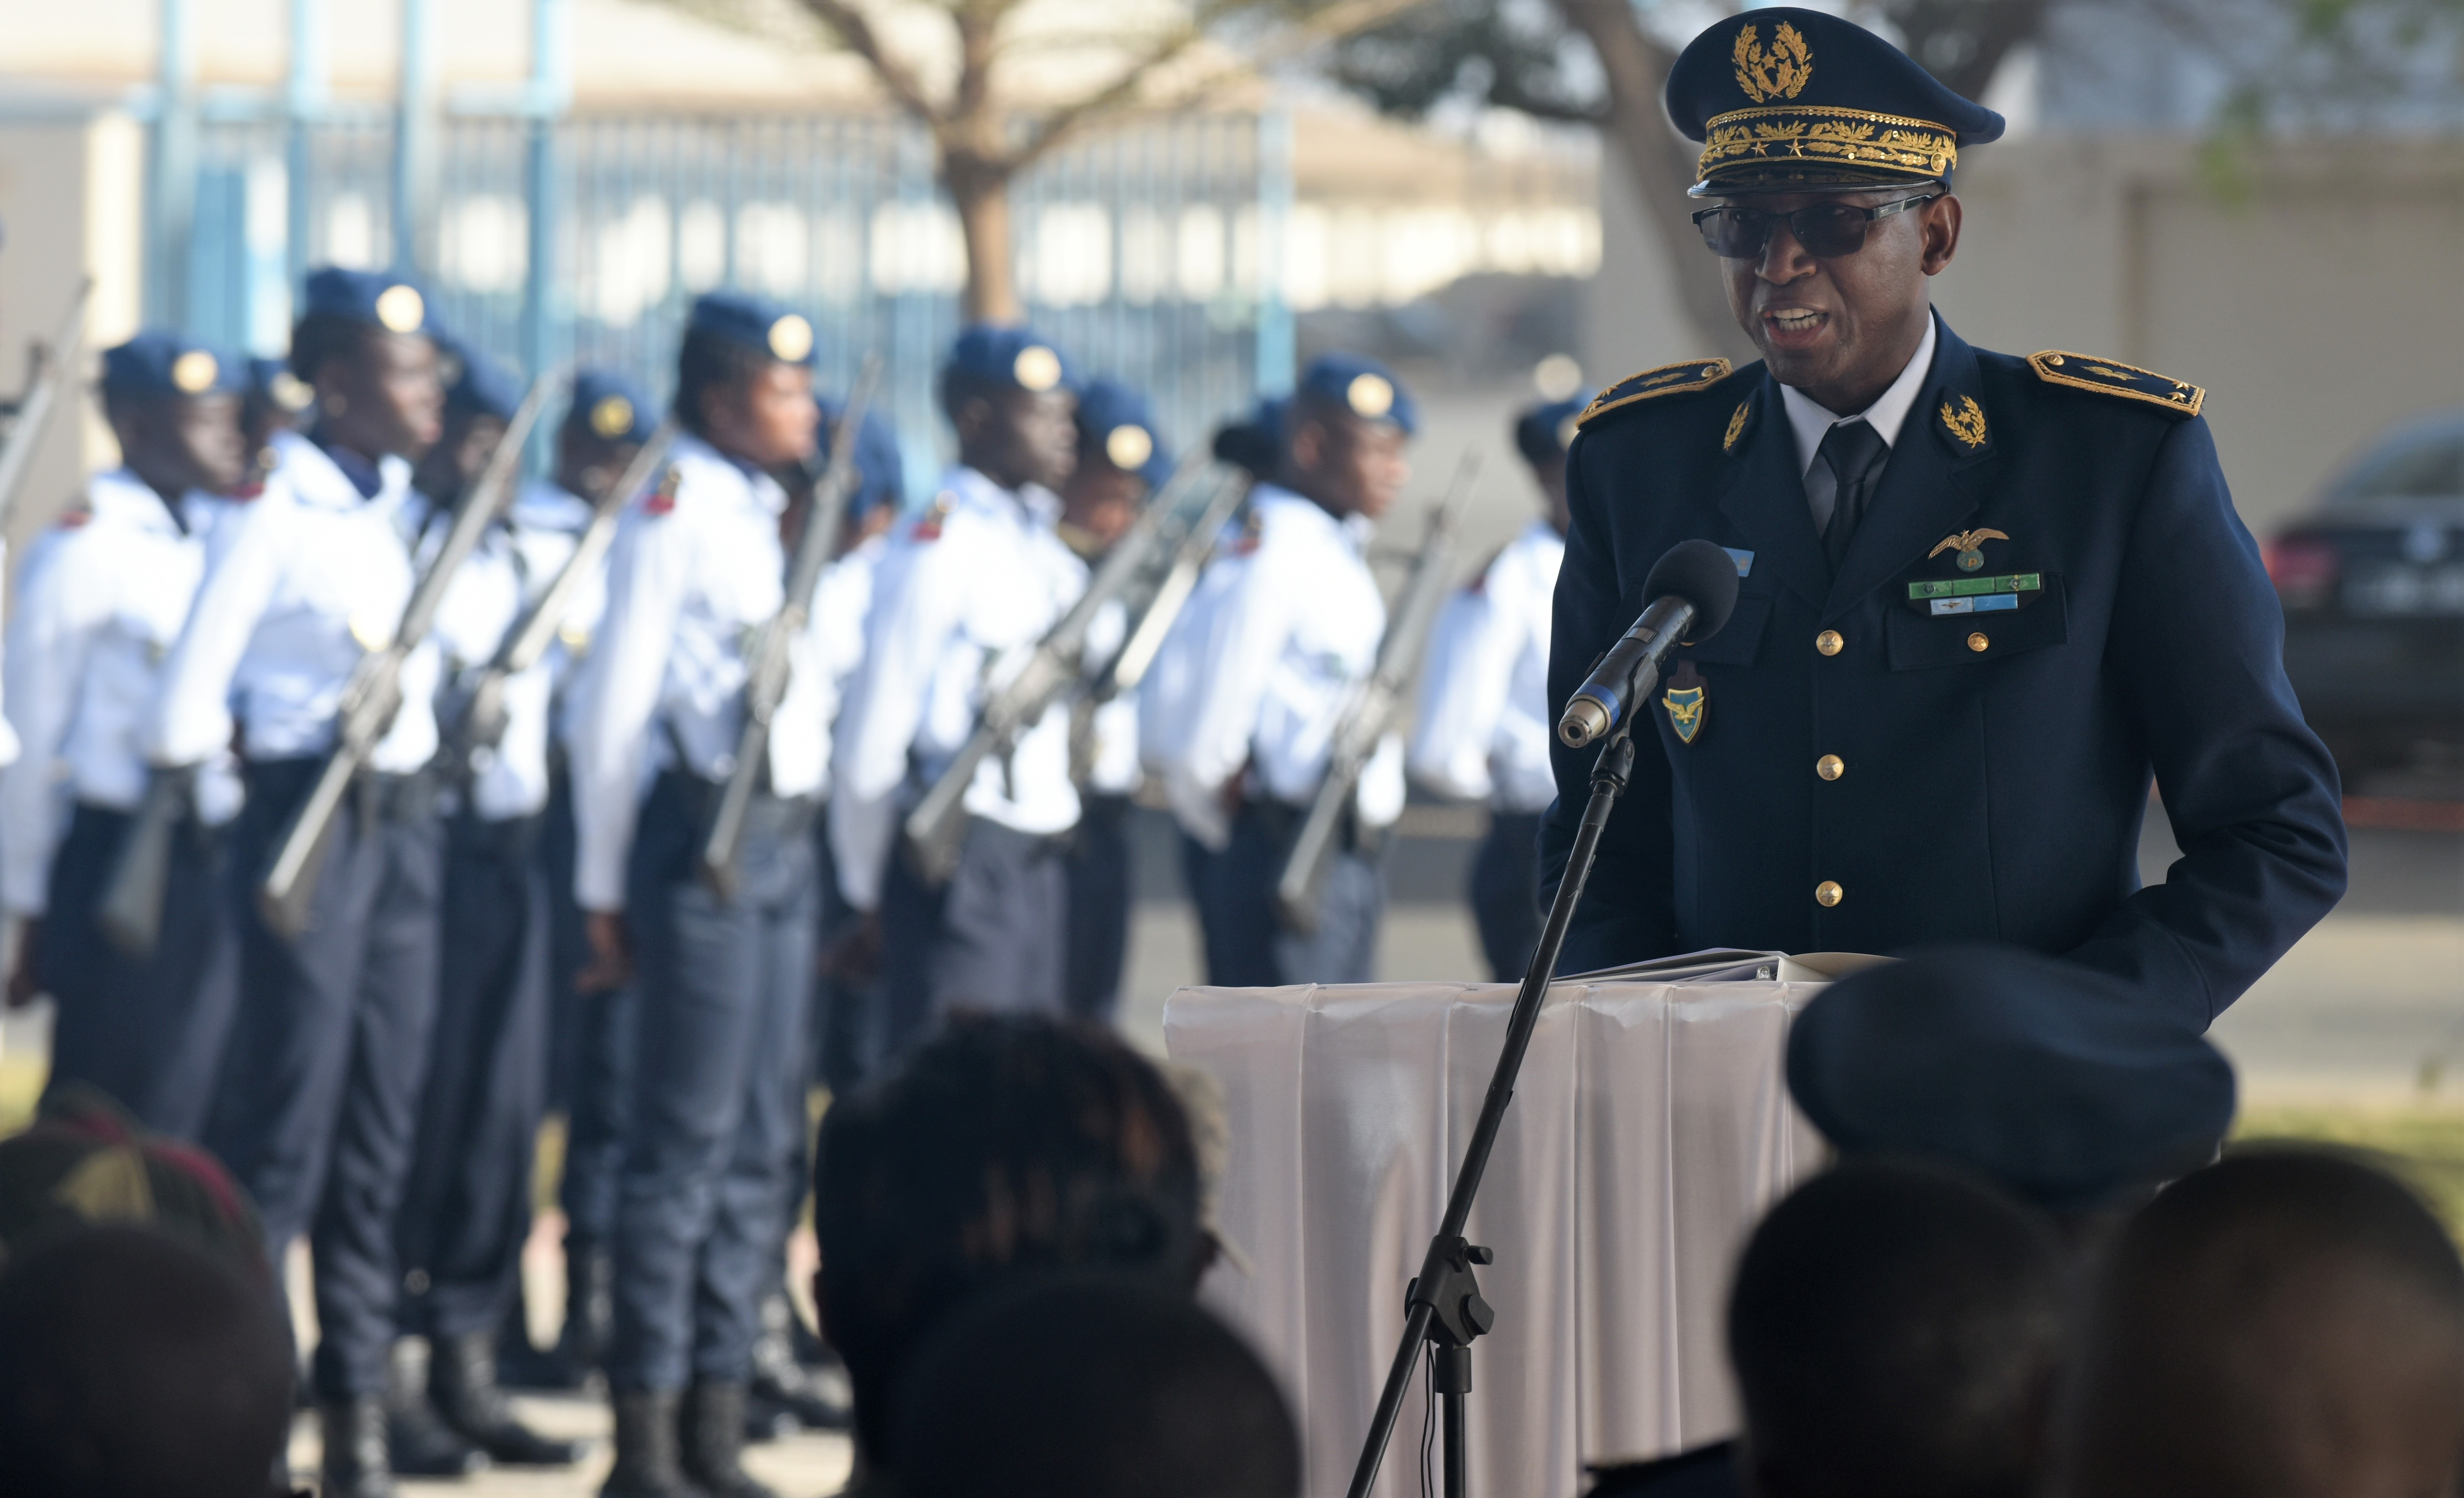 Senegalese Brig. Gen. Joseph Diop, Senegal air force Chief of Staff, speaks during the opening ceremony of African Partnership Flight Senegal at Captain Andalla Cissé Air Base, Senegal, March 19, 2018. The purpose of APF Senegal is to conduct multilateral, military-to-military engagements and security assistance with African air forces. (U.S. Air Force photo by Airman 1st Class Eli Chevalier)